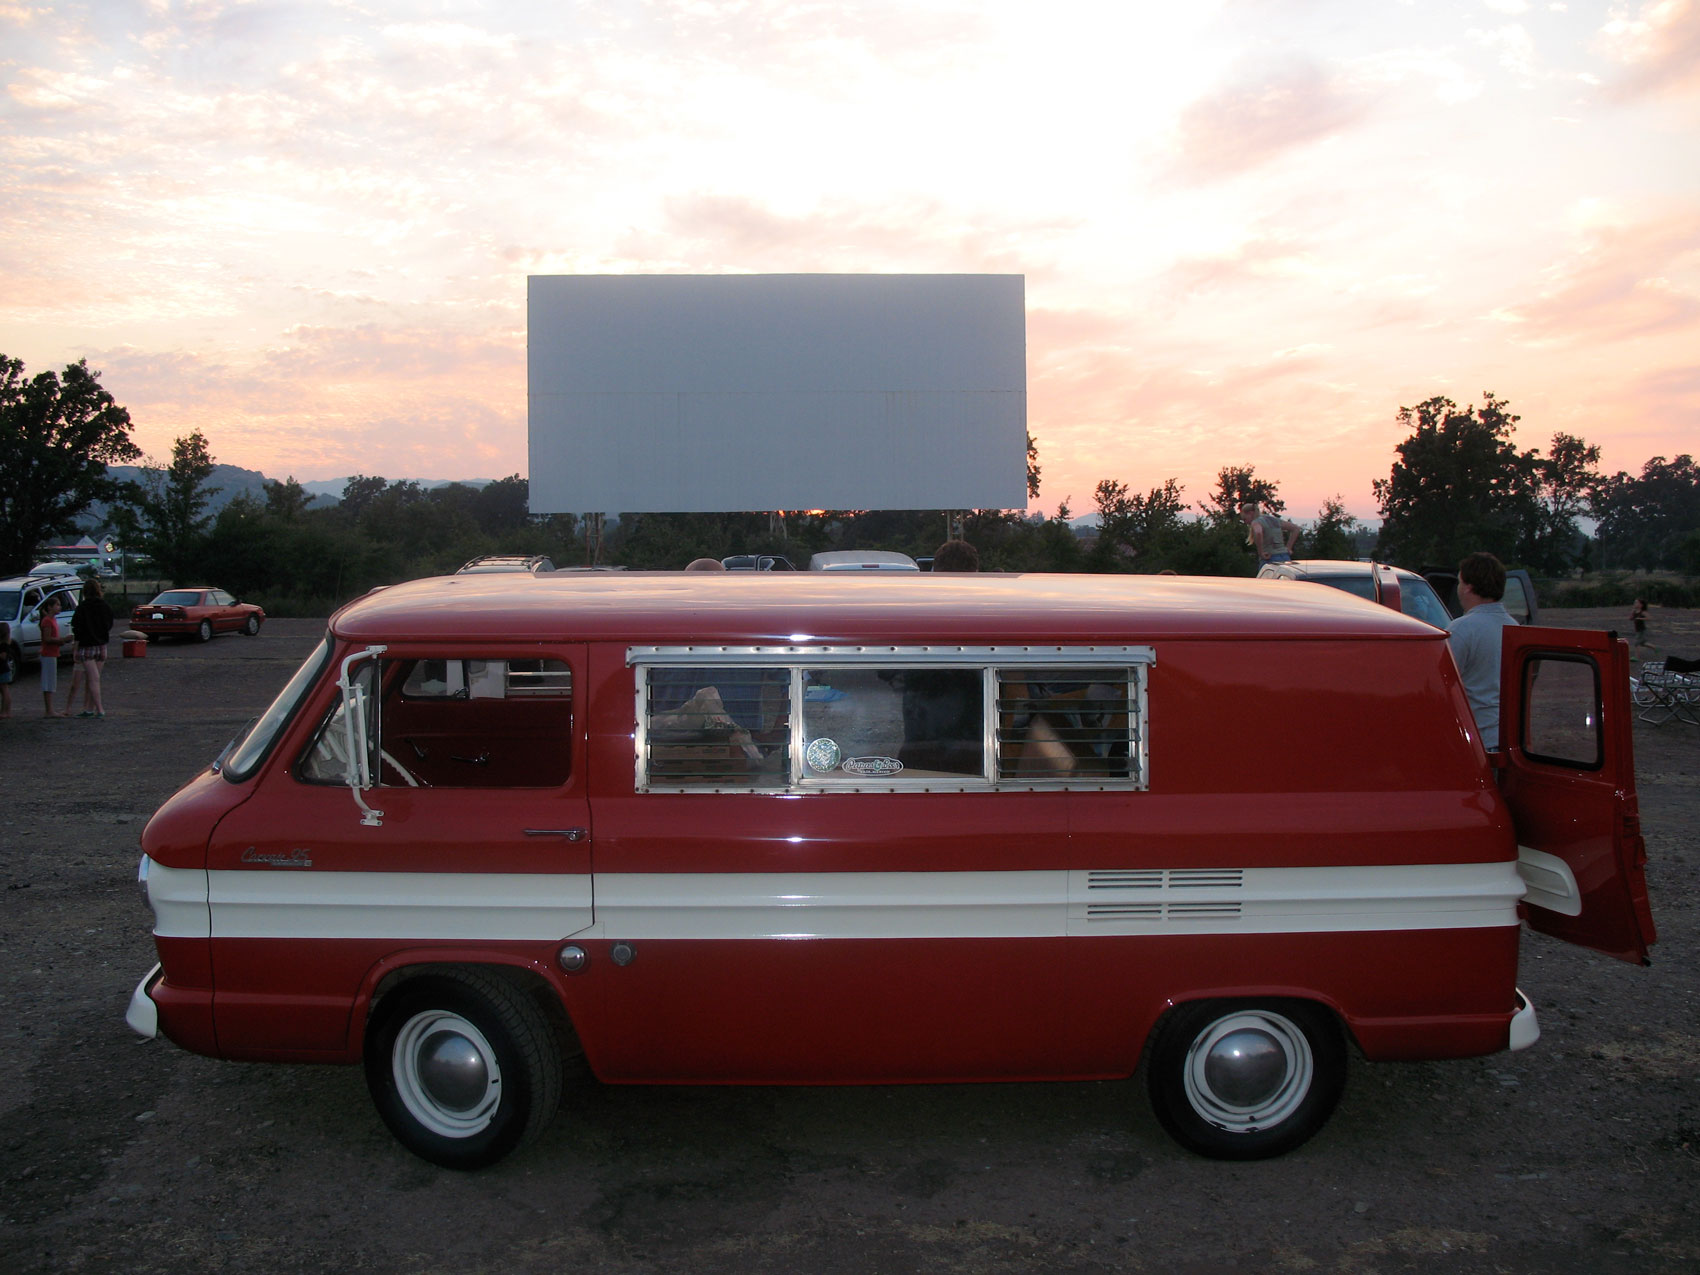 Corvan-at-drivein.jpg